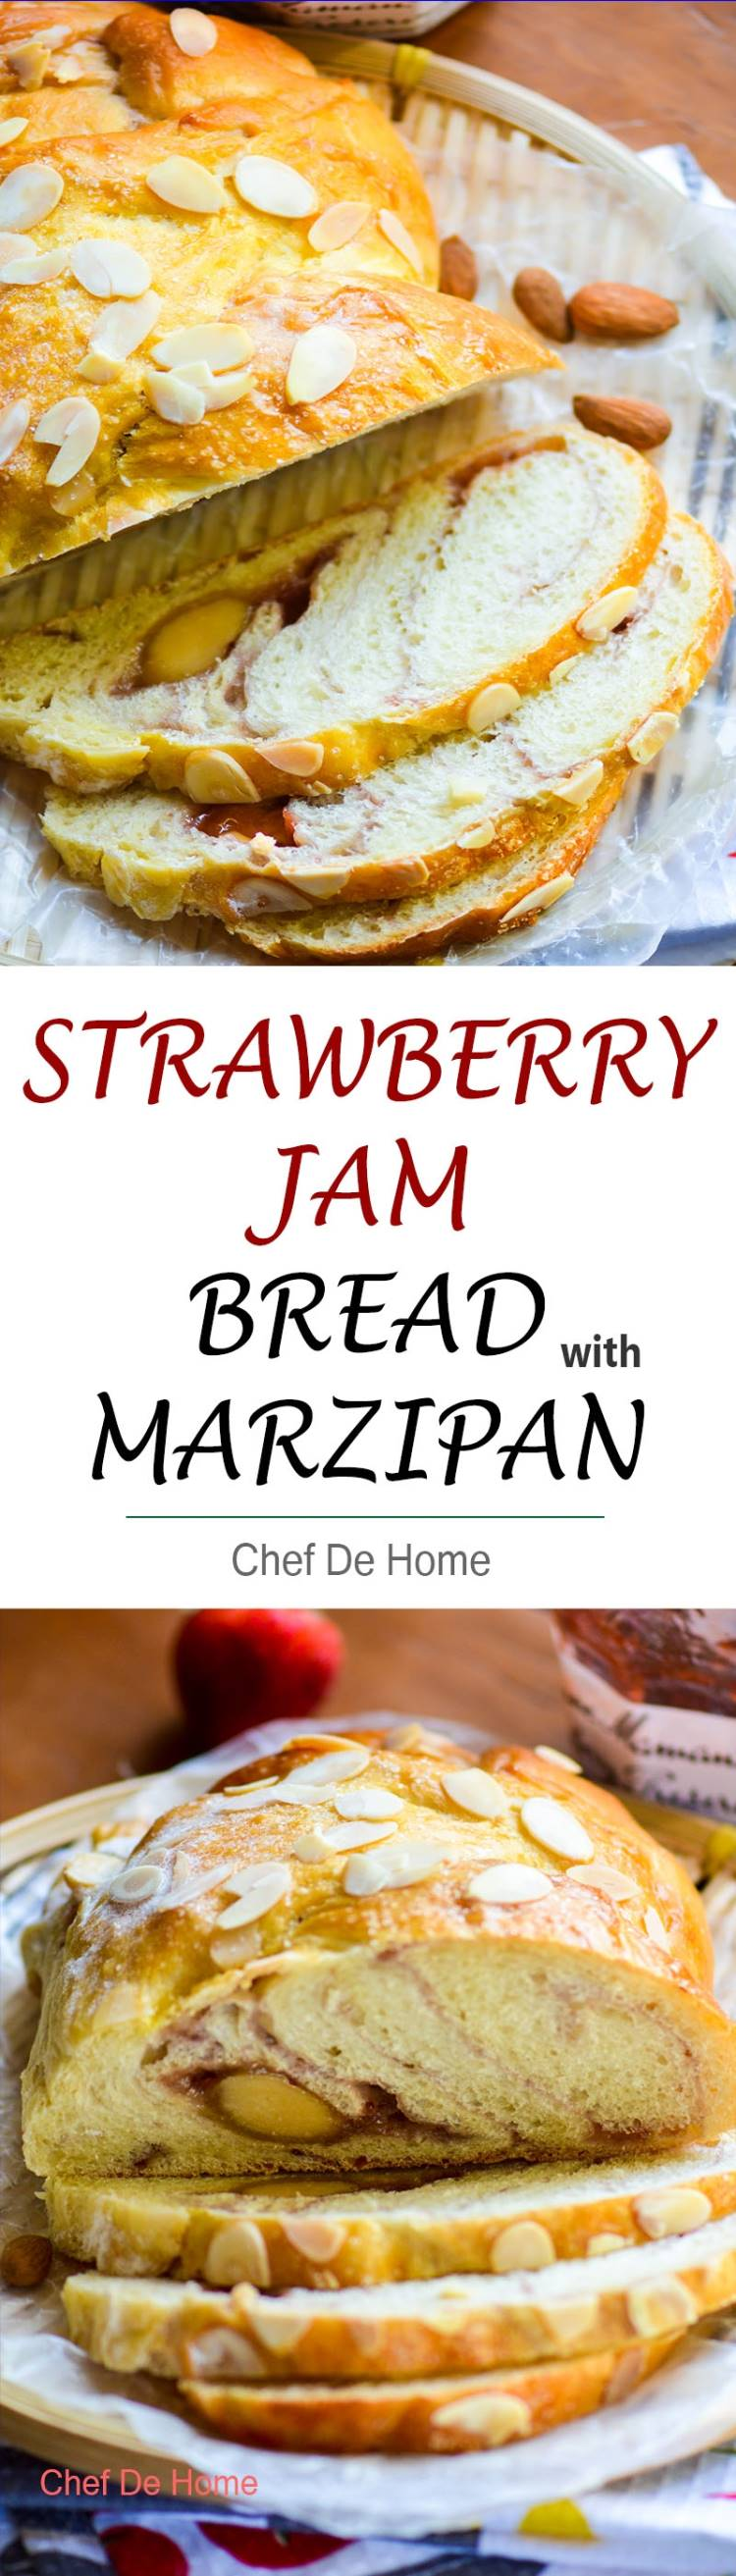 Strawberry Jam stuffed breakfast bread with layer of marzipan almond candy running through it. Perfect for holiday breakfast